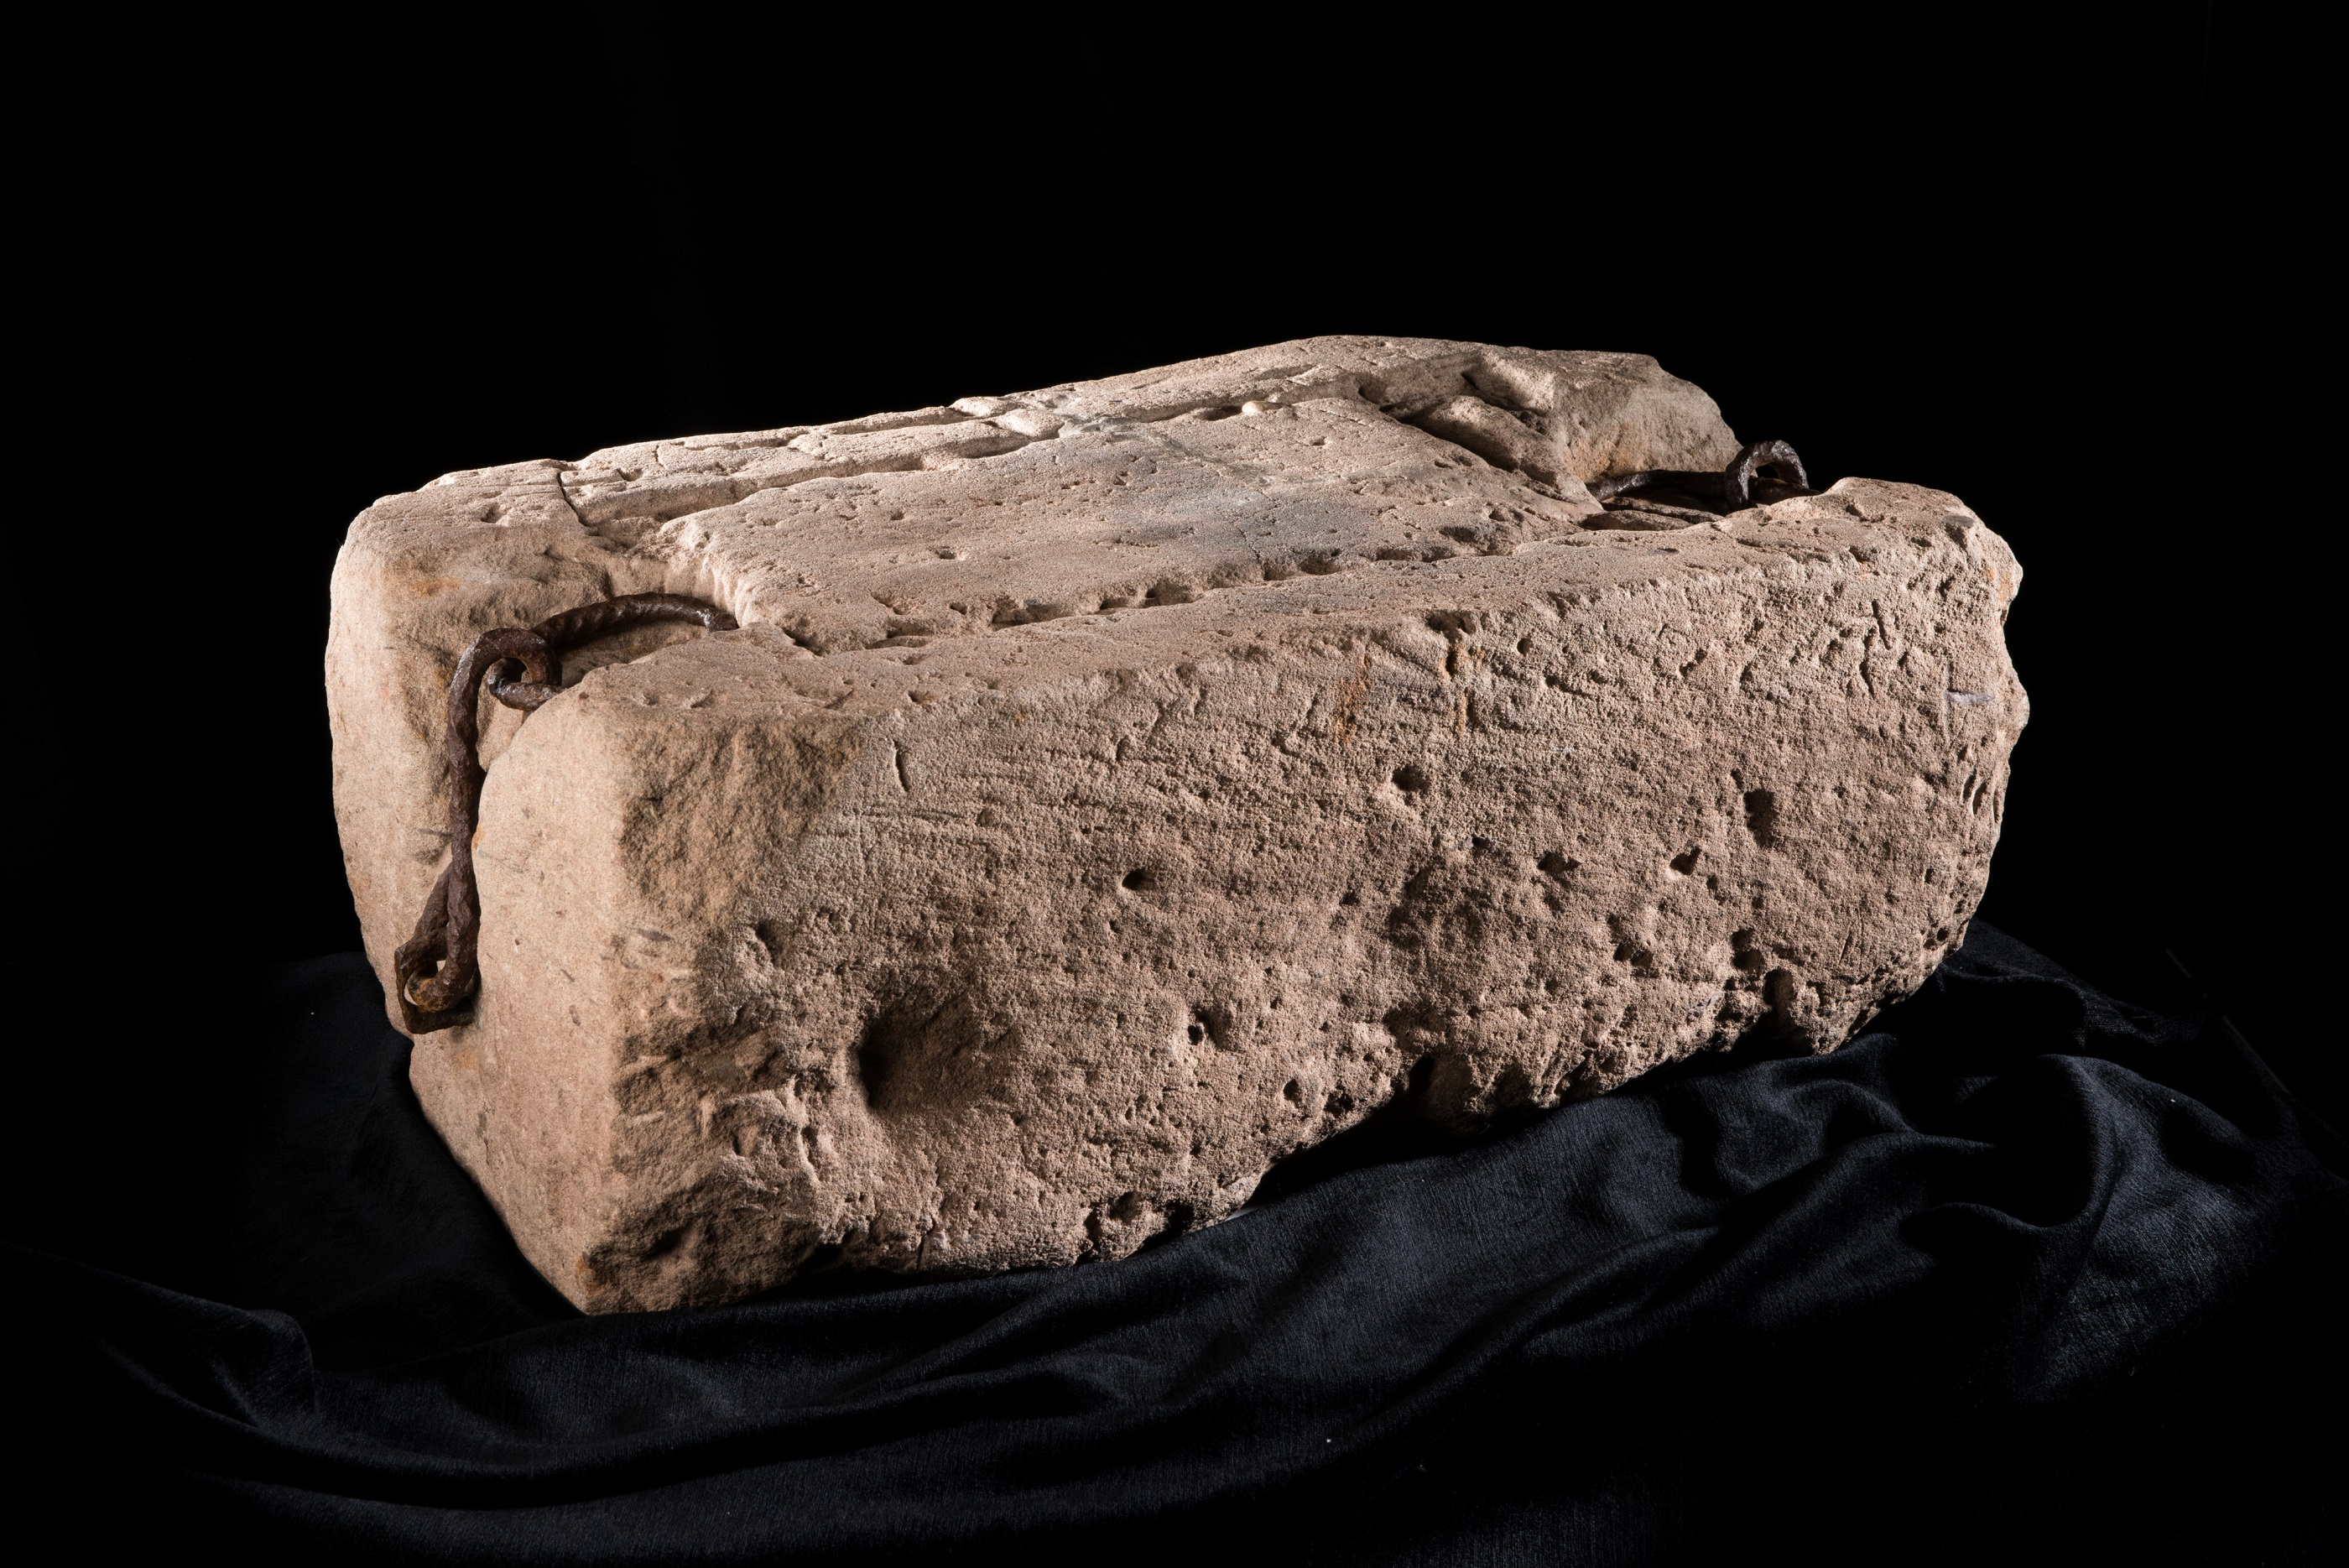 Stone of Destiny also known as the Stone of Scone, and often referred to in England as The Coronation Stone. Oblong block of red sandstone that was used for centuries in the coronation of the monarchs of Scotland, and later the monarchs of England and the Kingdom of Great Britain. Historically, the artefact was kept at the now ruined Scone Abbey in Scone, near Perth, Scotland. About 26 inches (660mm) by 16.75 inches (425mm) by 10.5 inches (270mm) and its weight approximately 336 pounds (152 kg). Currently kept and displayed in Edinburgh Castle, Edinburgh